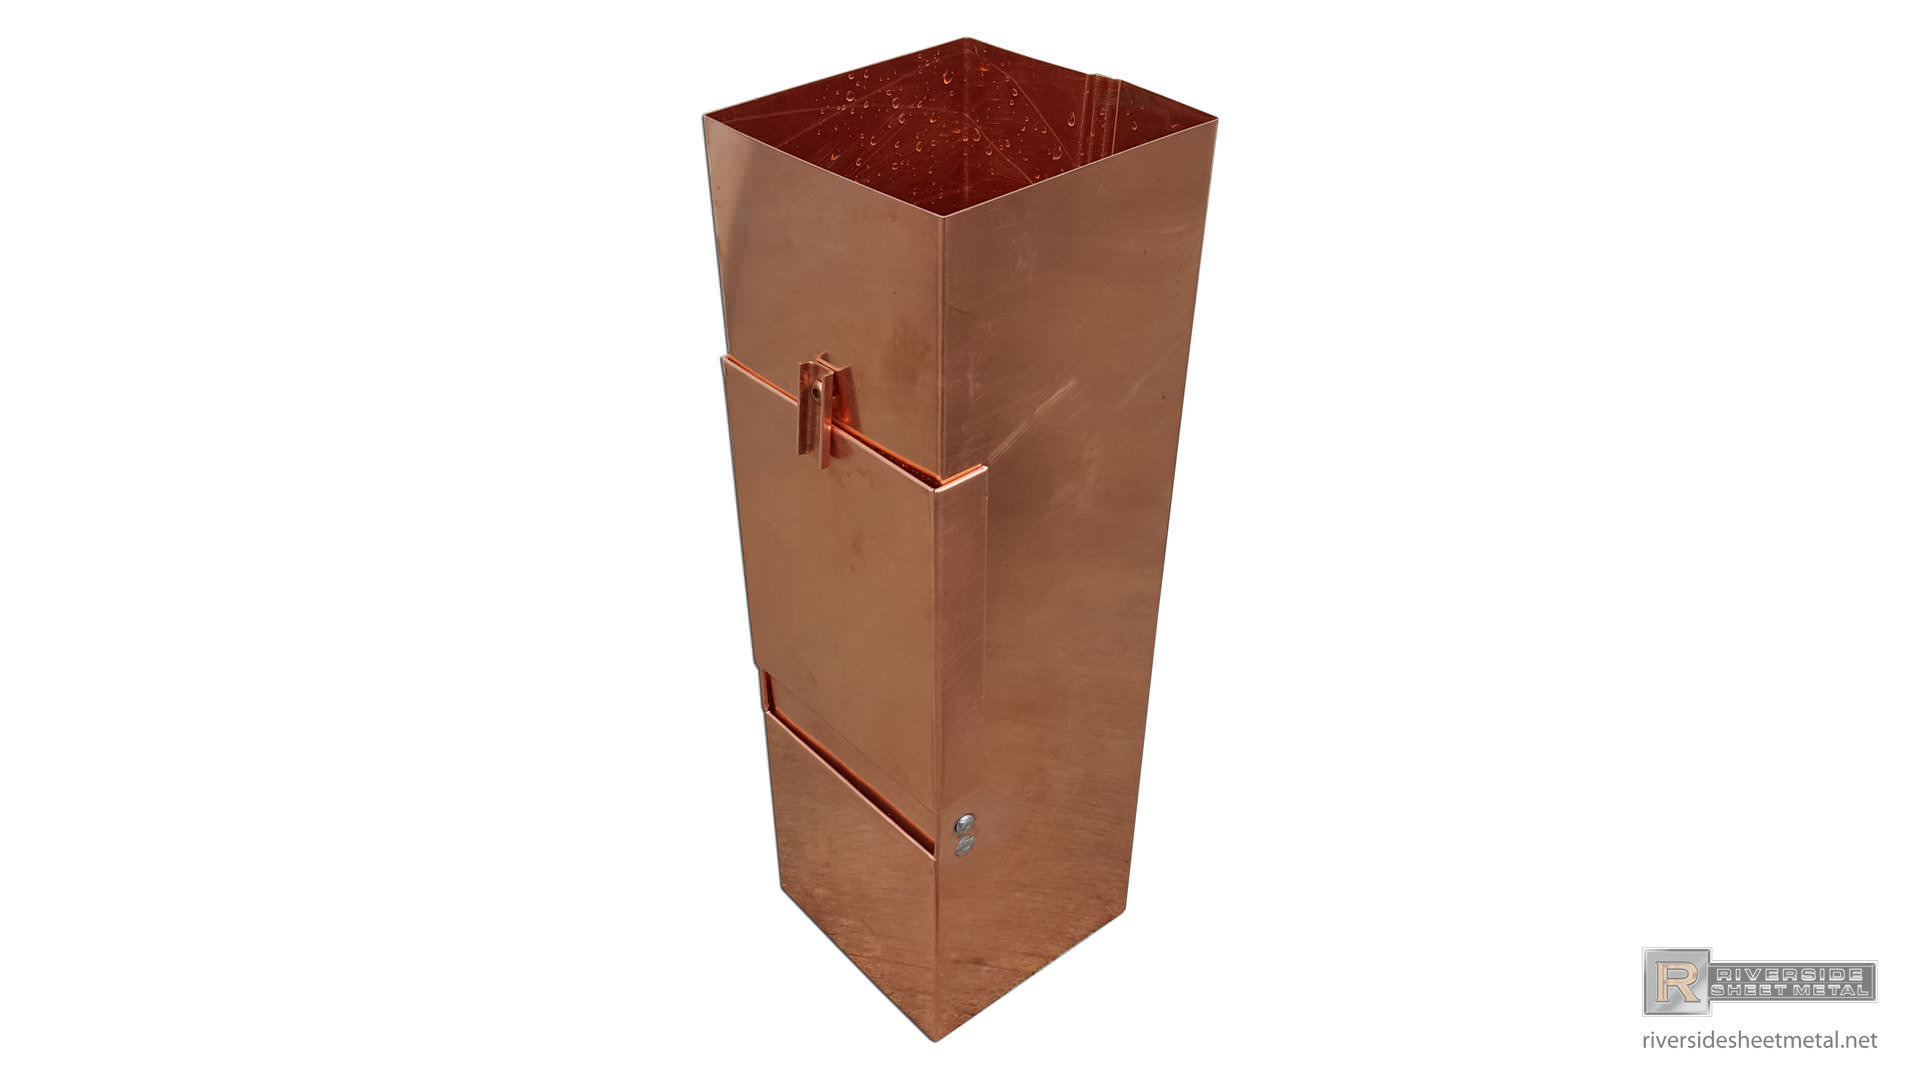 Square Smooth Copper And Aluminum Downspout Cleanout 2